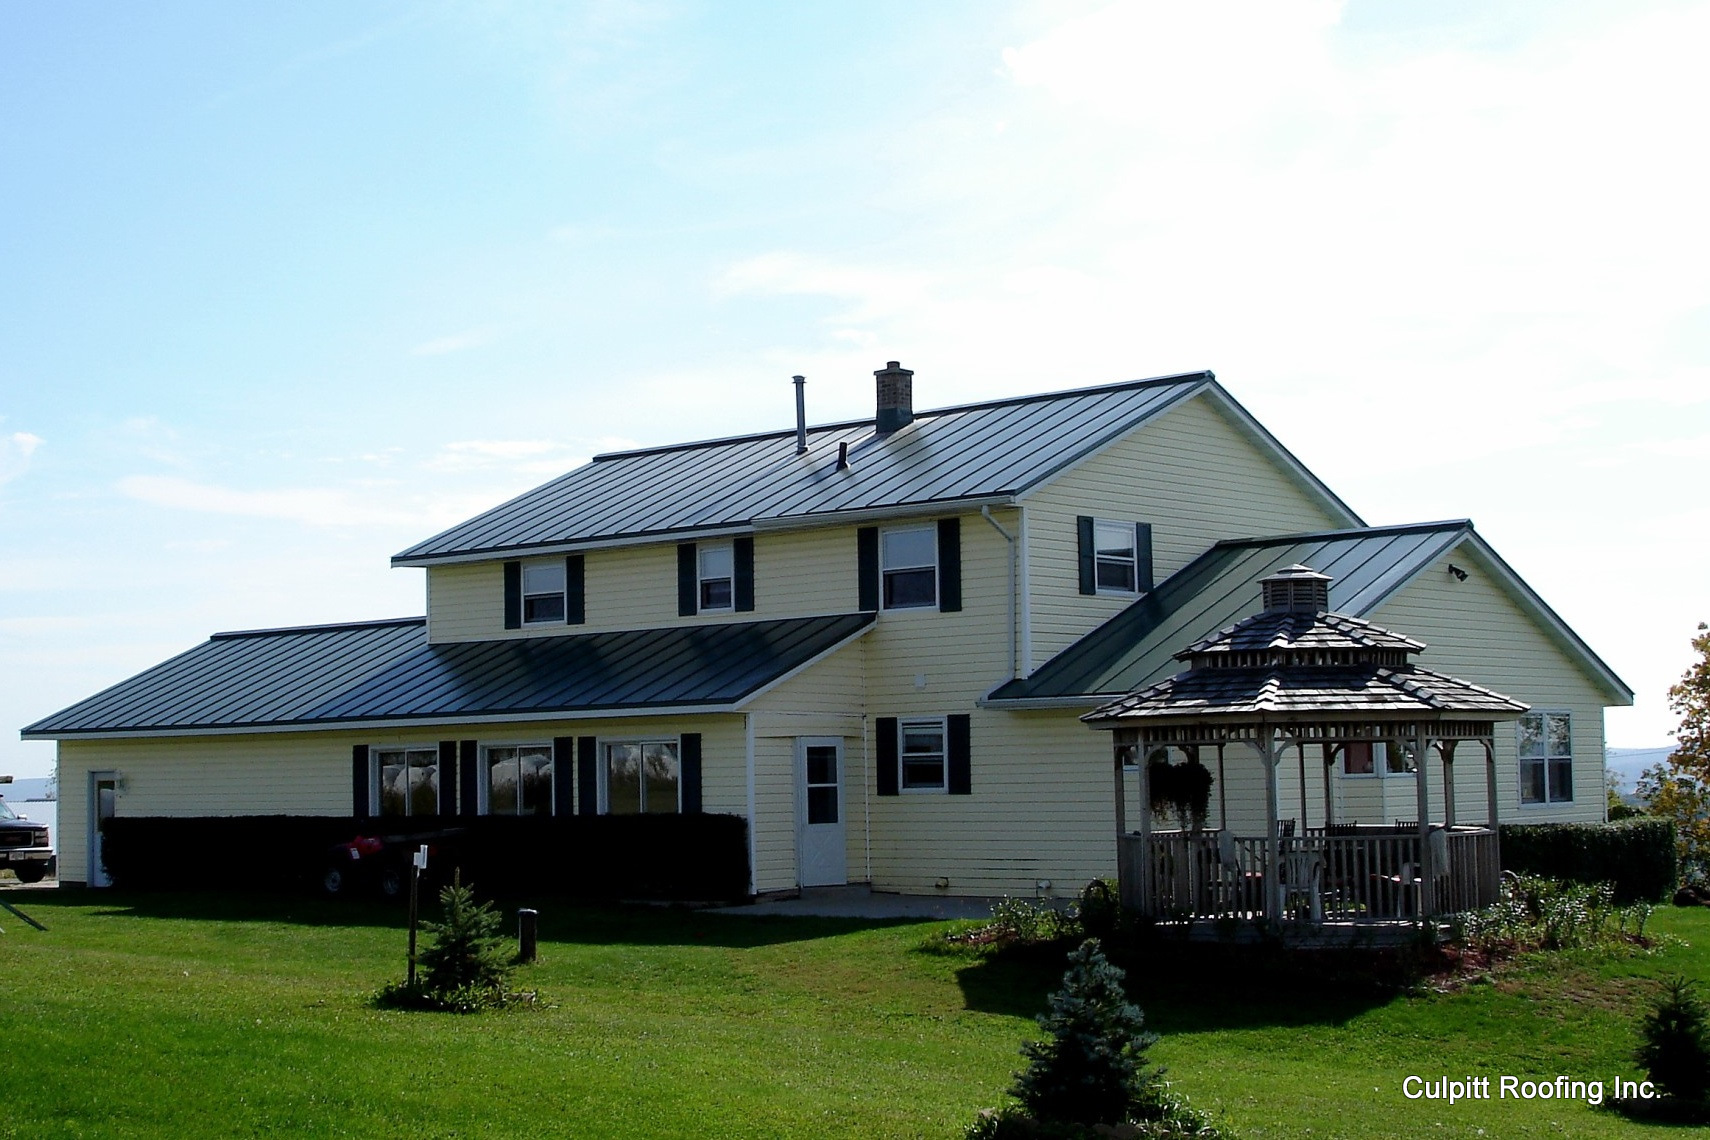 standing seam sheet metal roofing dark sherwood green house residential wisconsin minnesota iowa illinois north dakota